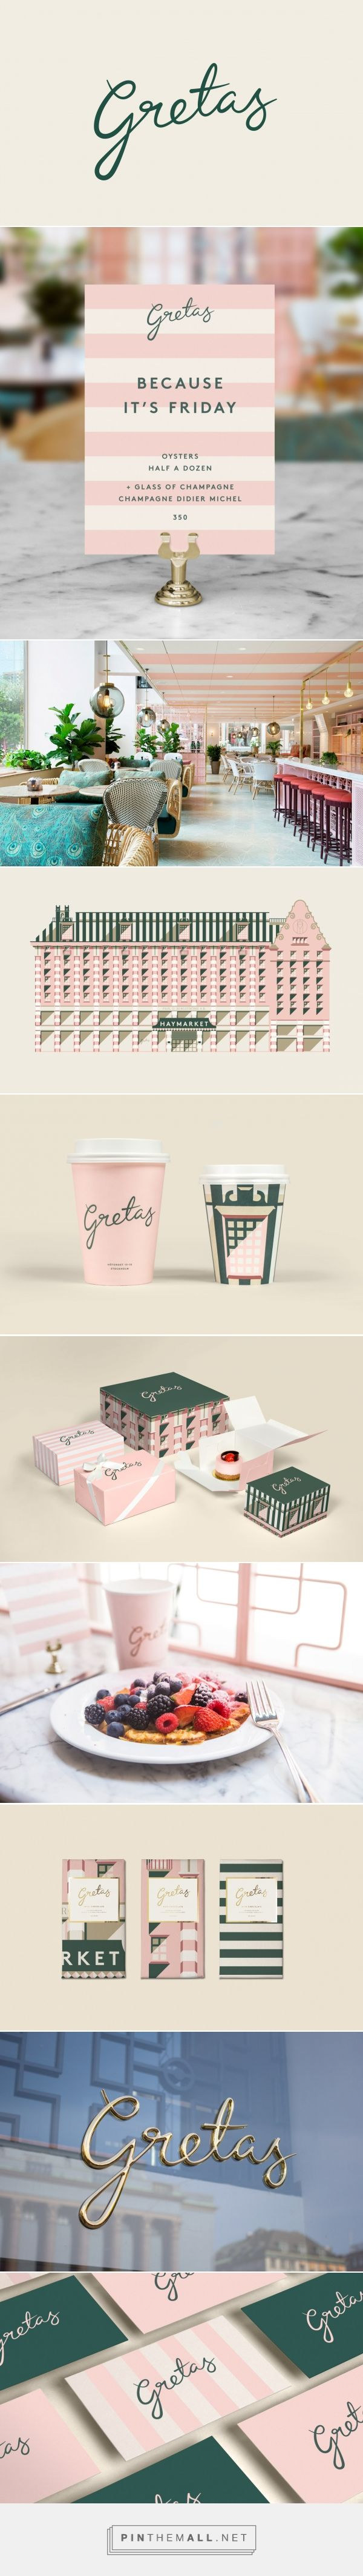 Gretas Cafe Branding by 25AH | Fivestar Branding Agency – Design and Branding Agency & Curated Inspiration Gallery